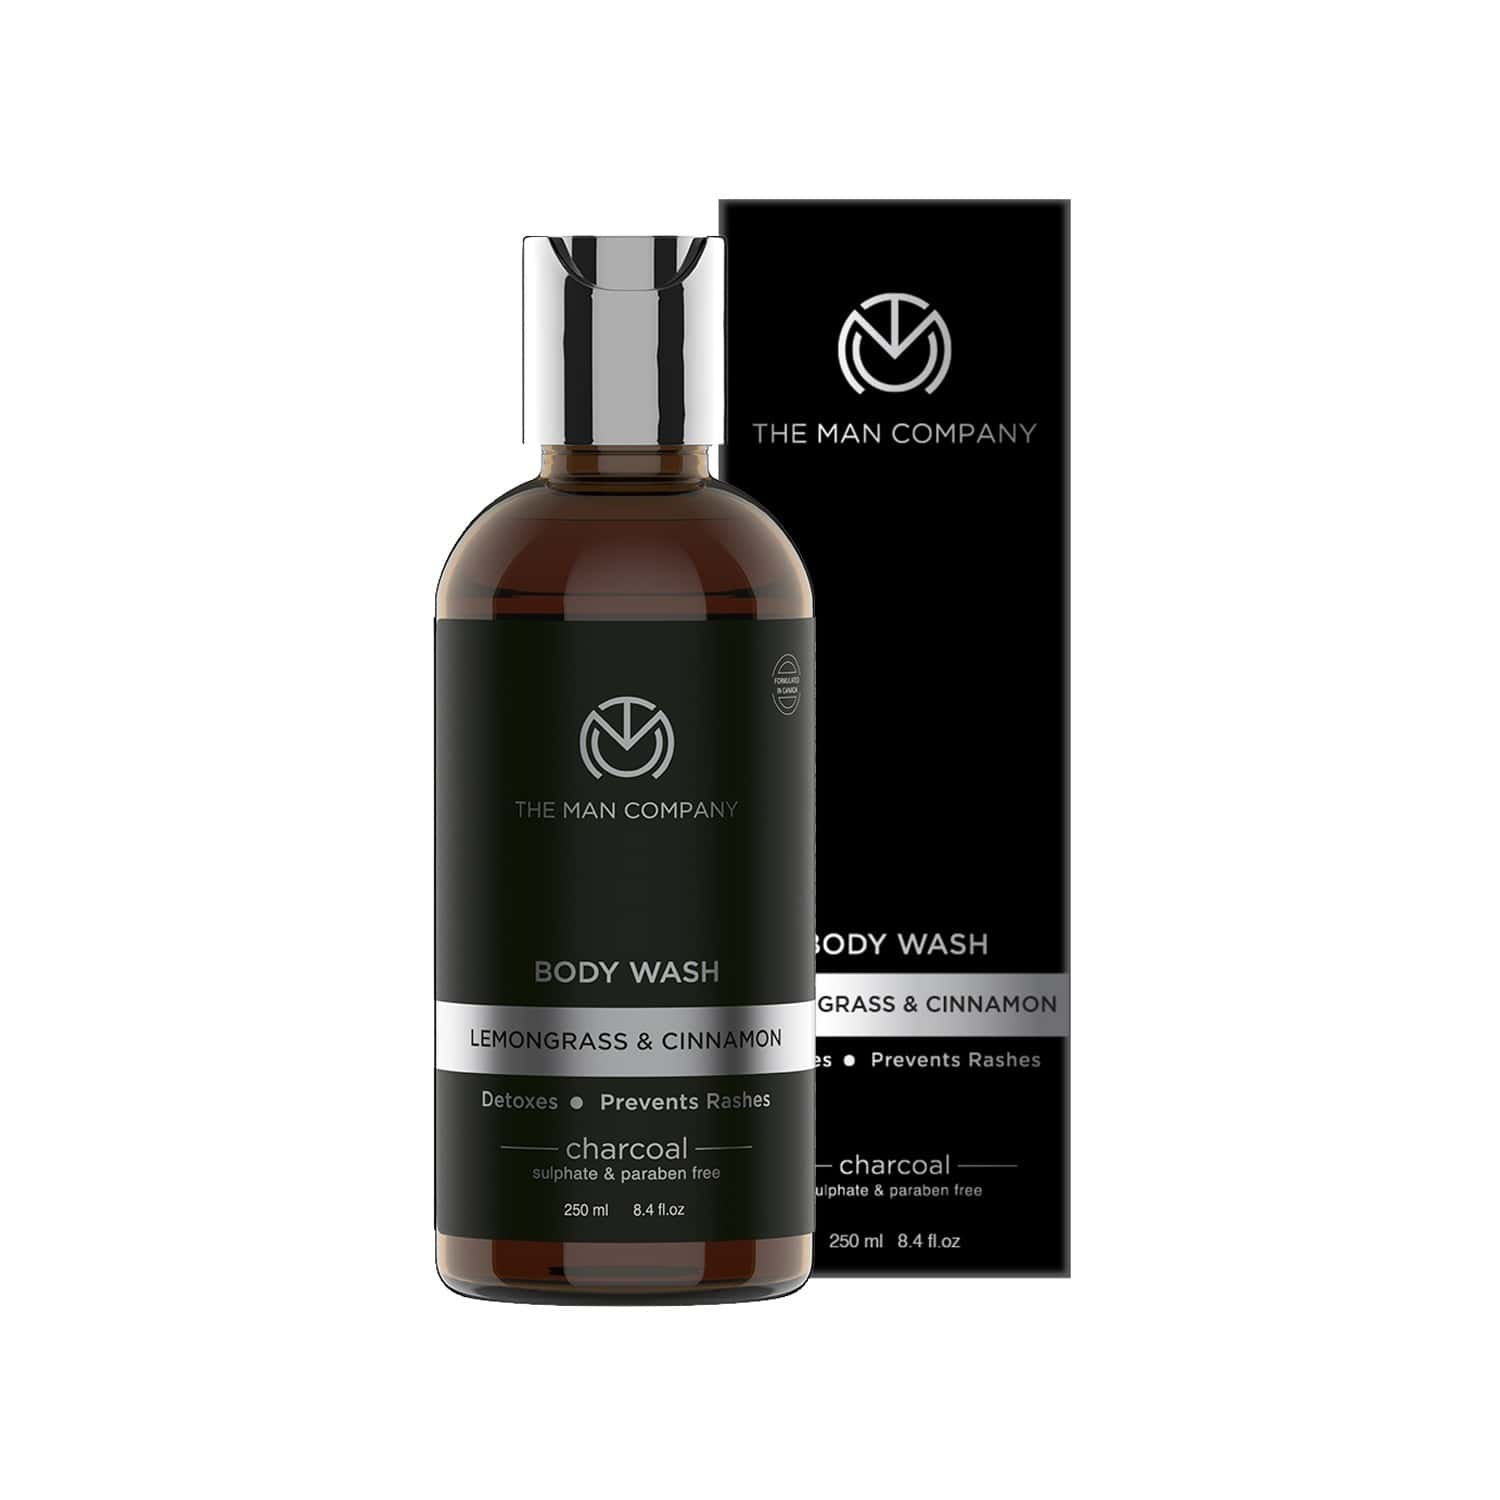 The Man Company Deep Cleansing Activated Charcoal Body Wash - 250 Ml